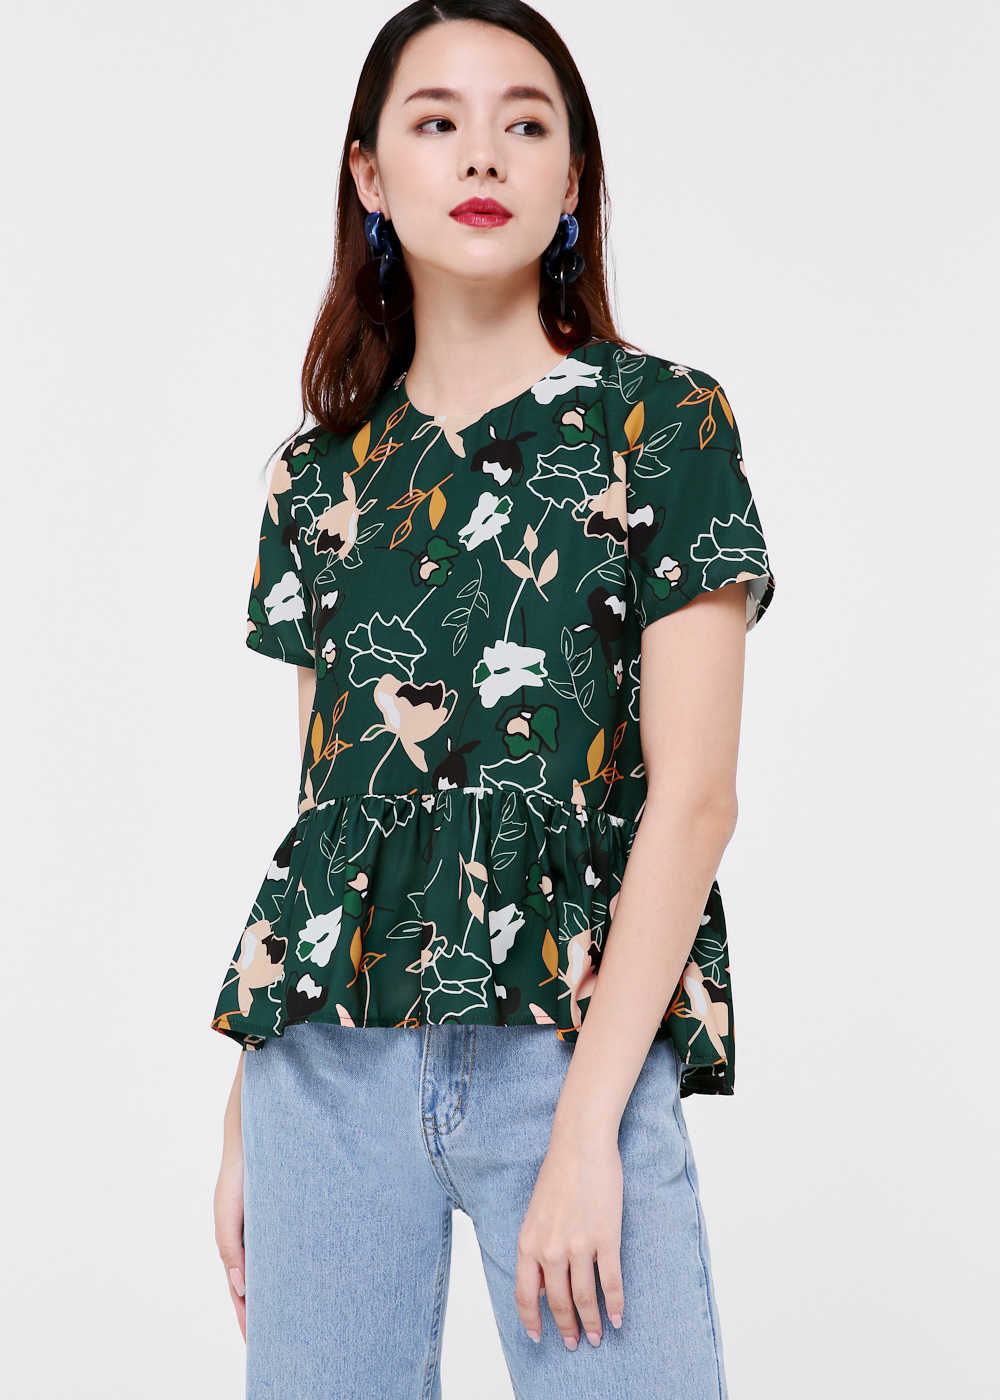 Leah Baby Doll Top in Forest Whimsy